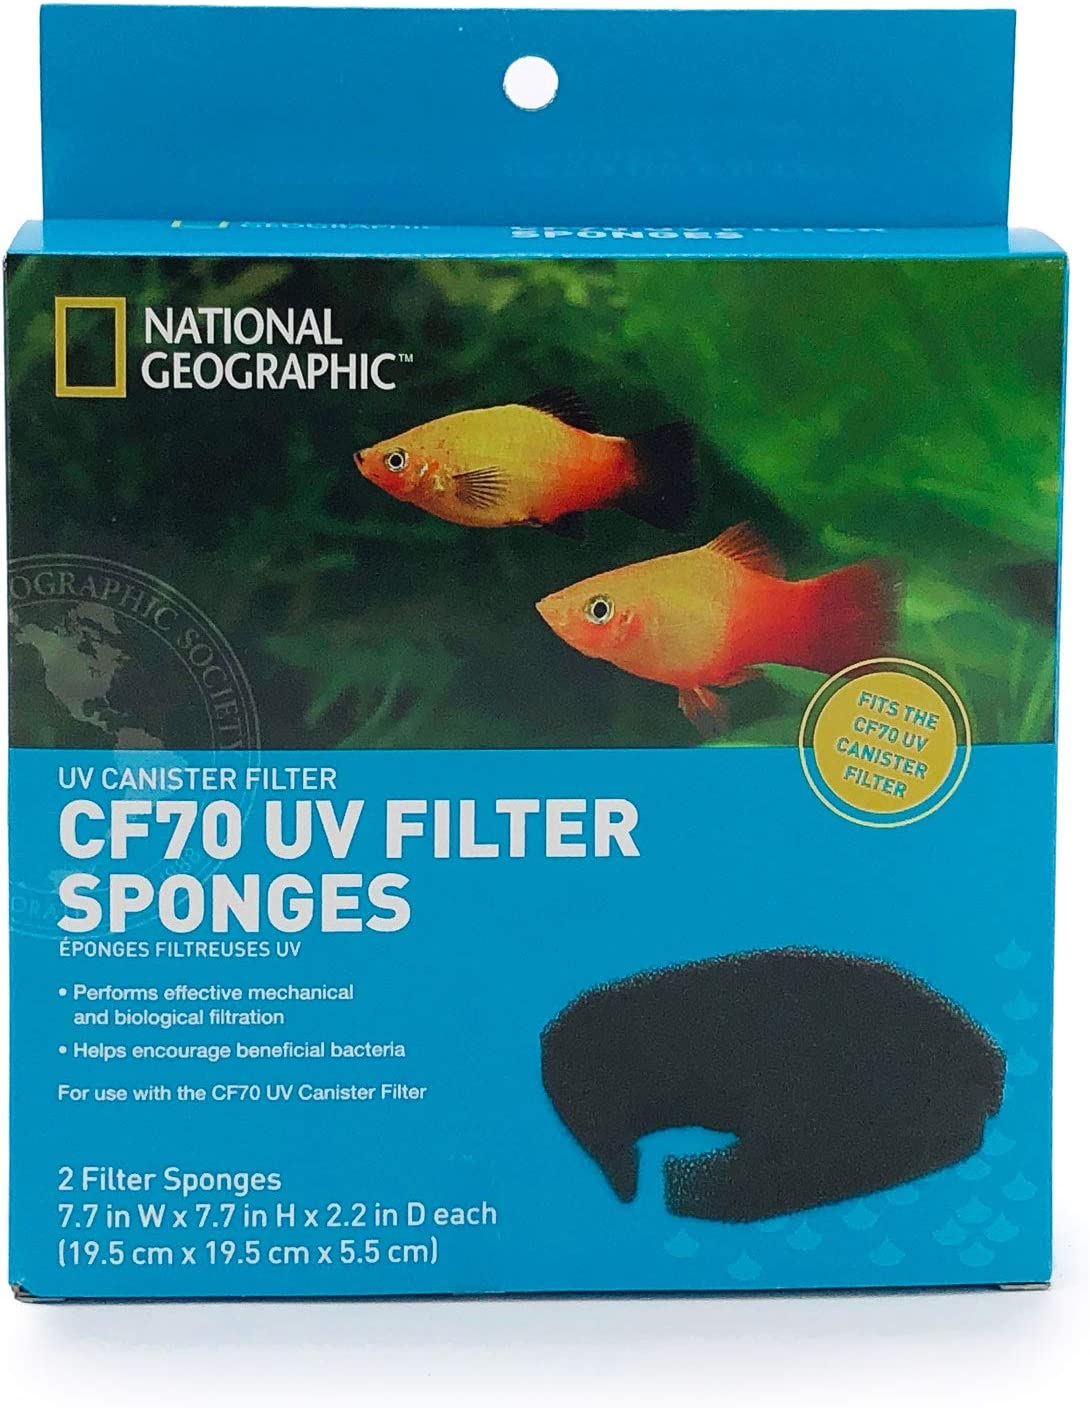 NATIONAL GEOGRAPHIC CF70 UV Filter Sponges 2 Count